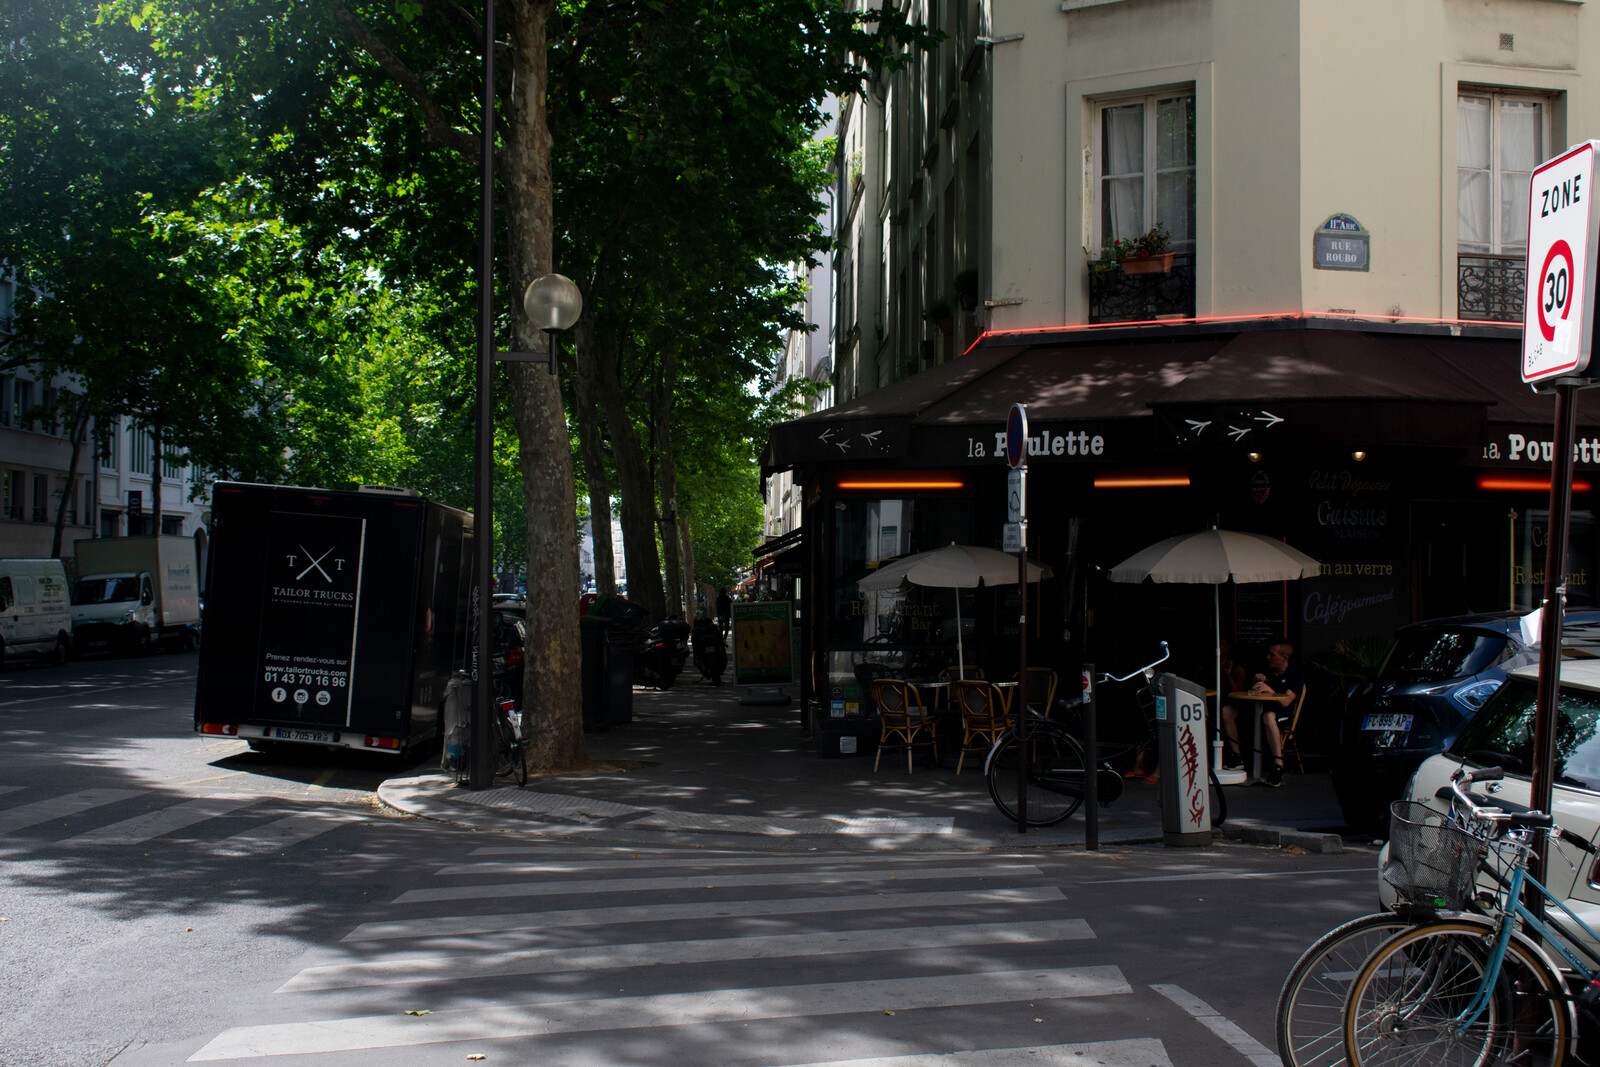 france truck and restaurant